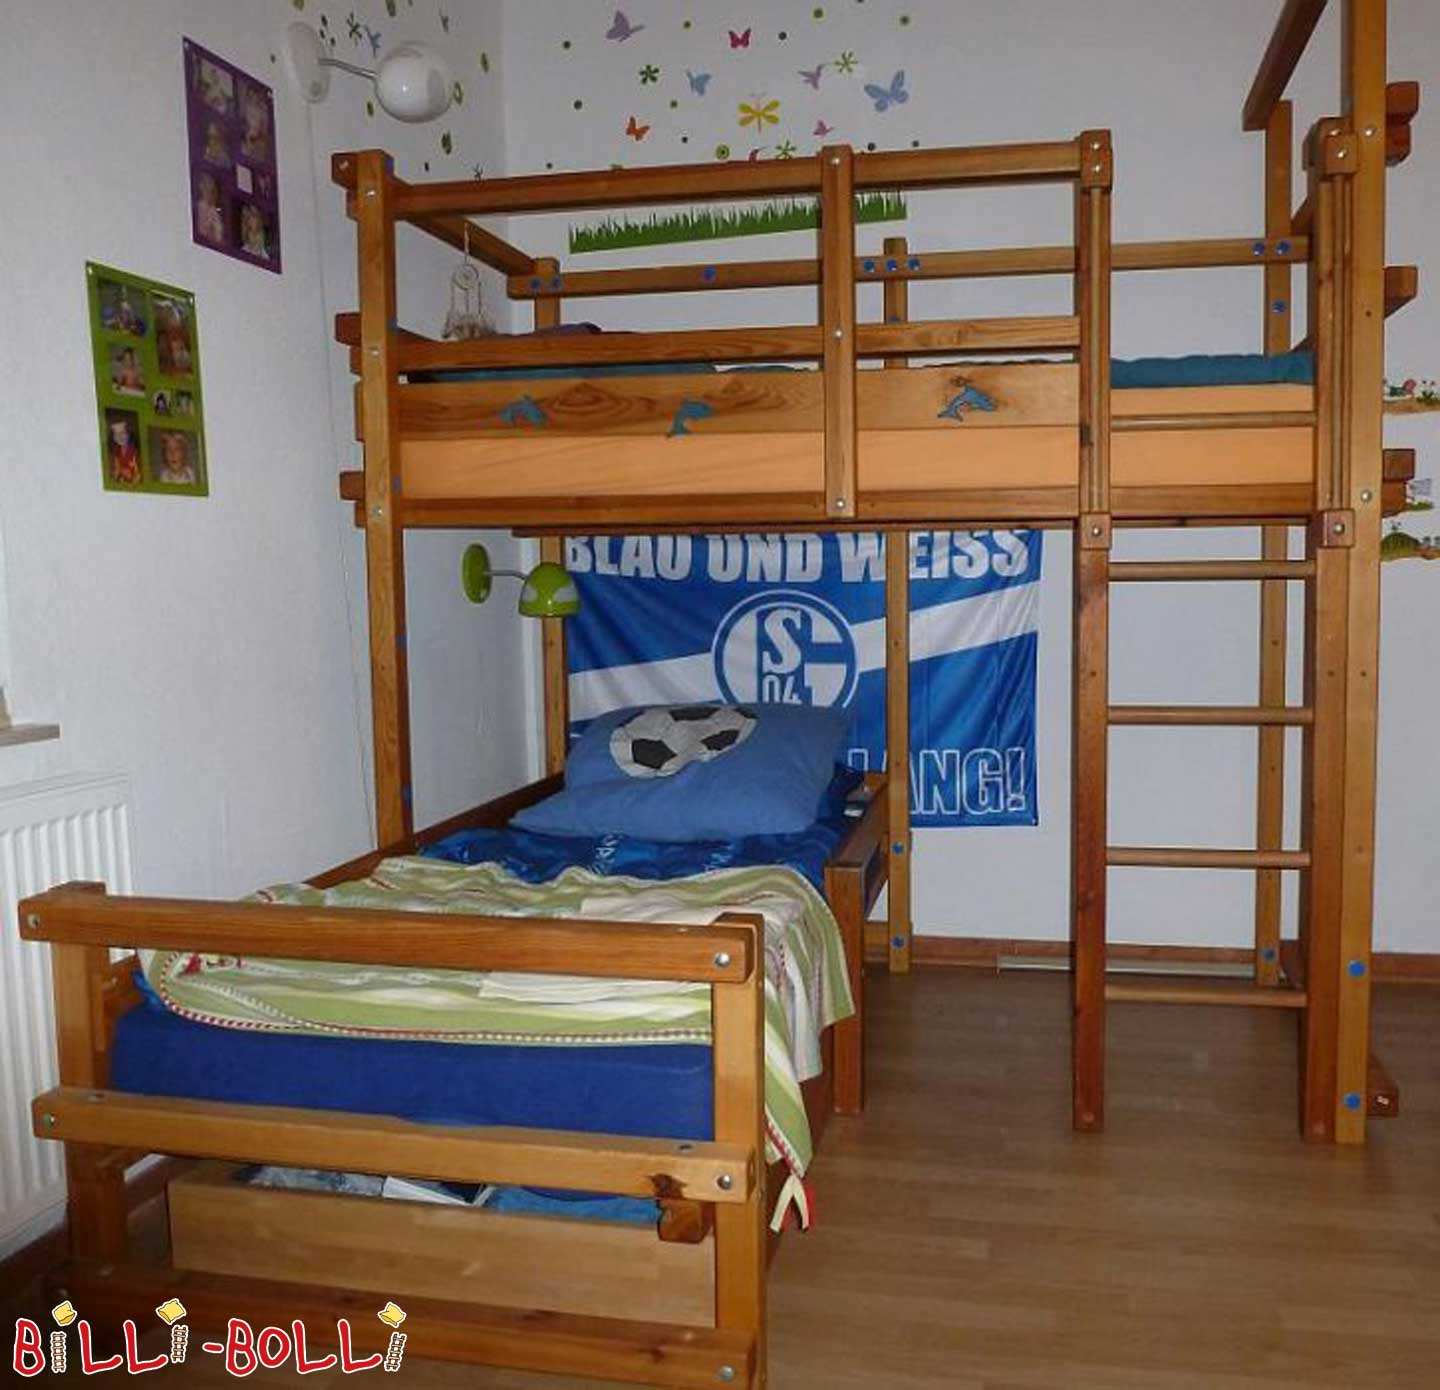 Secondhand page 93 billi bolli kids furniture for Bett second hand